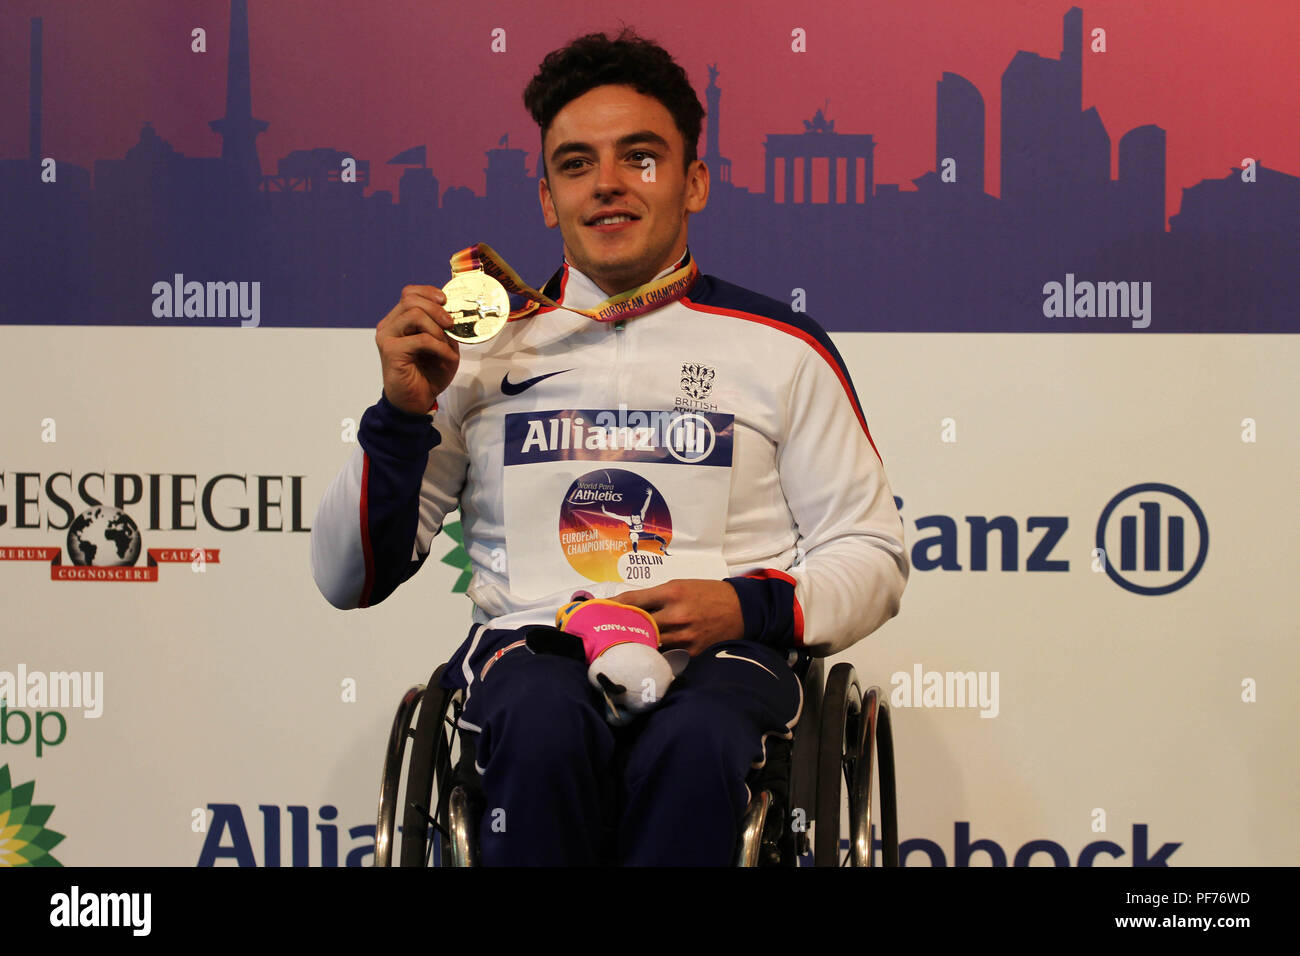 Berlin, Germany. 20th August 2018. Harri Jenkins poses with his gold medal during  on Day 1 of the World Para Athletics European Championships in Berlin, Germany Credit: Ben Booth/Alamy Live News - Stock Image